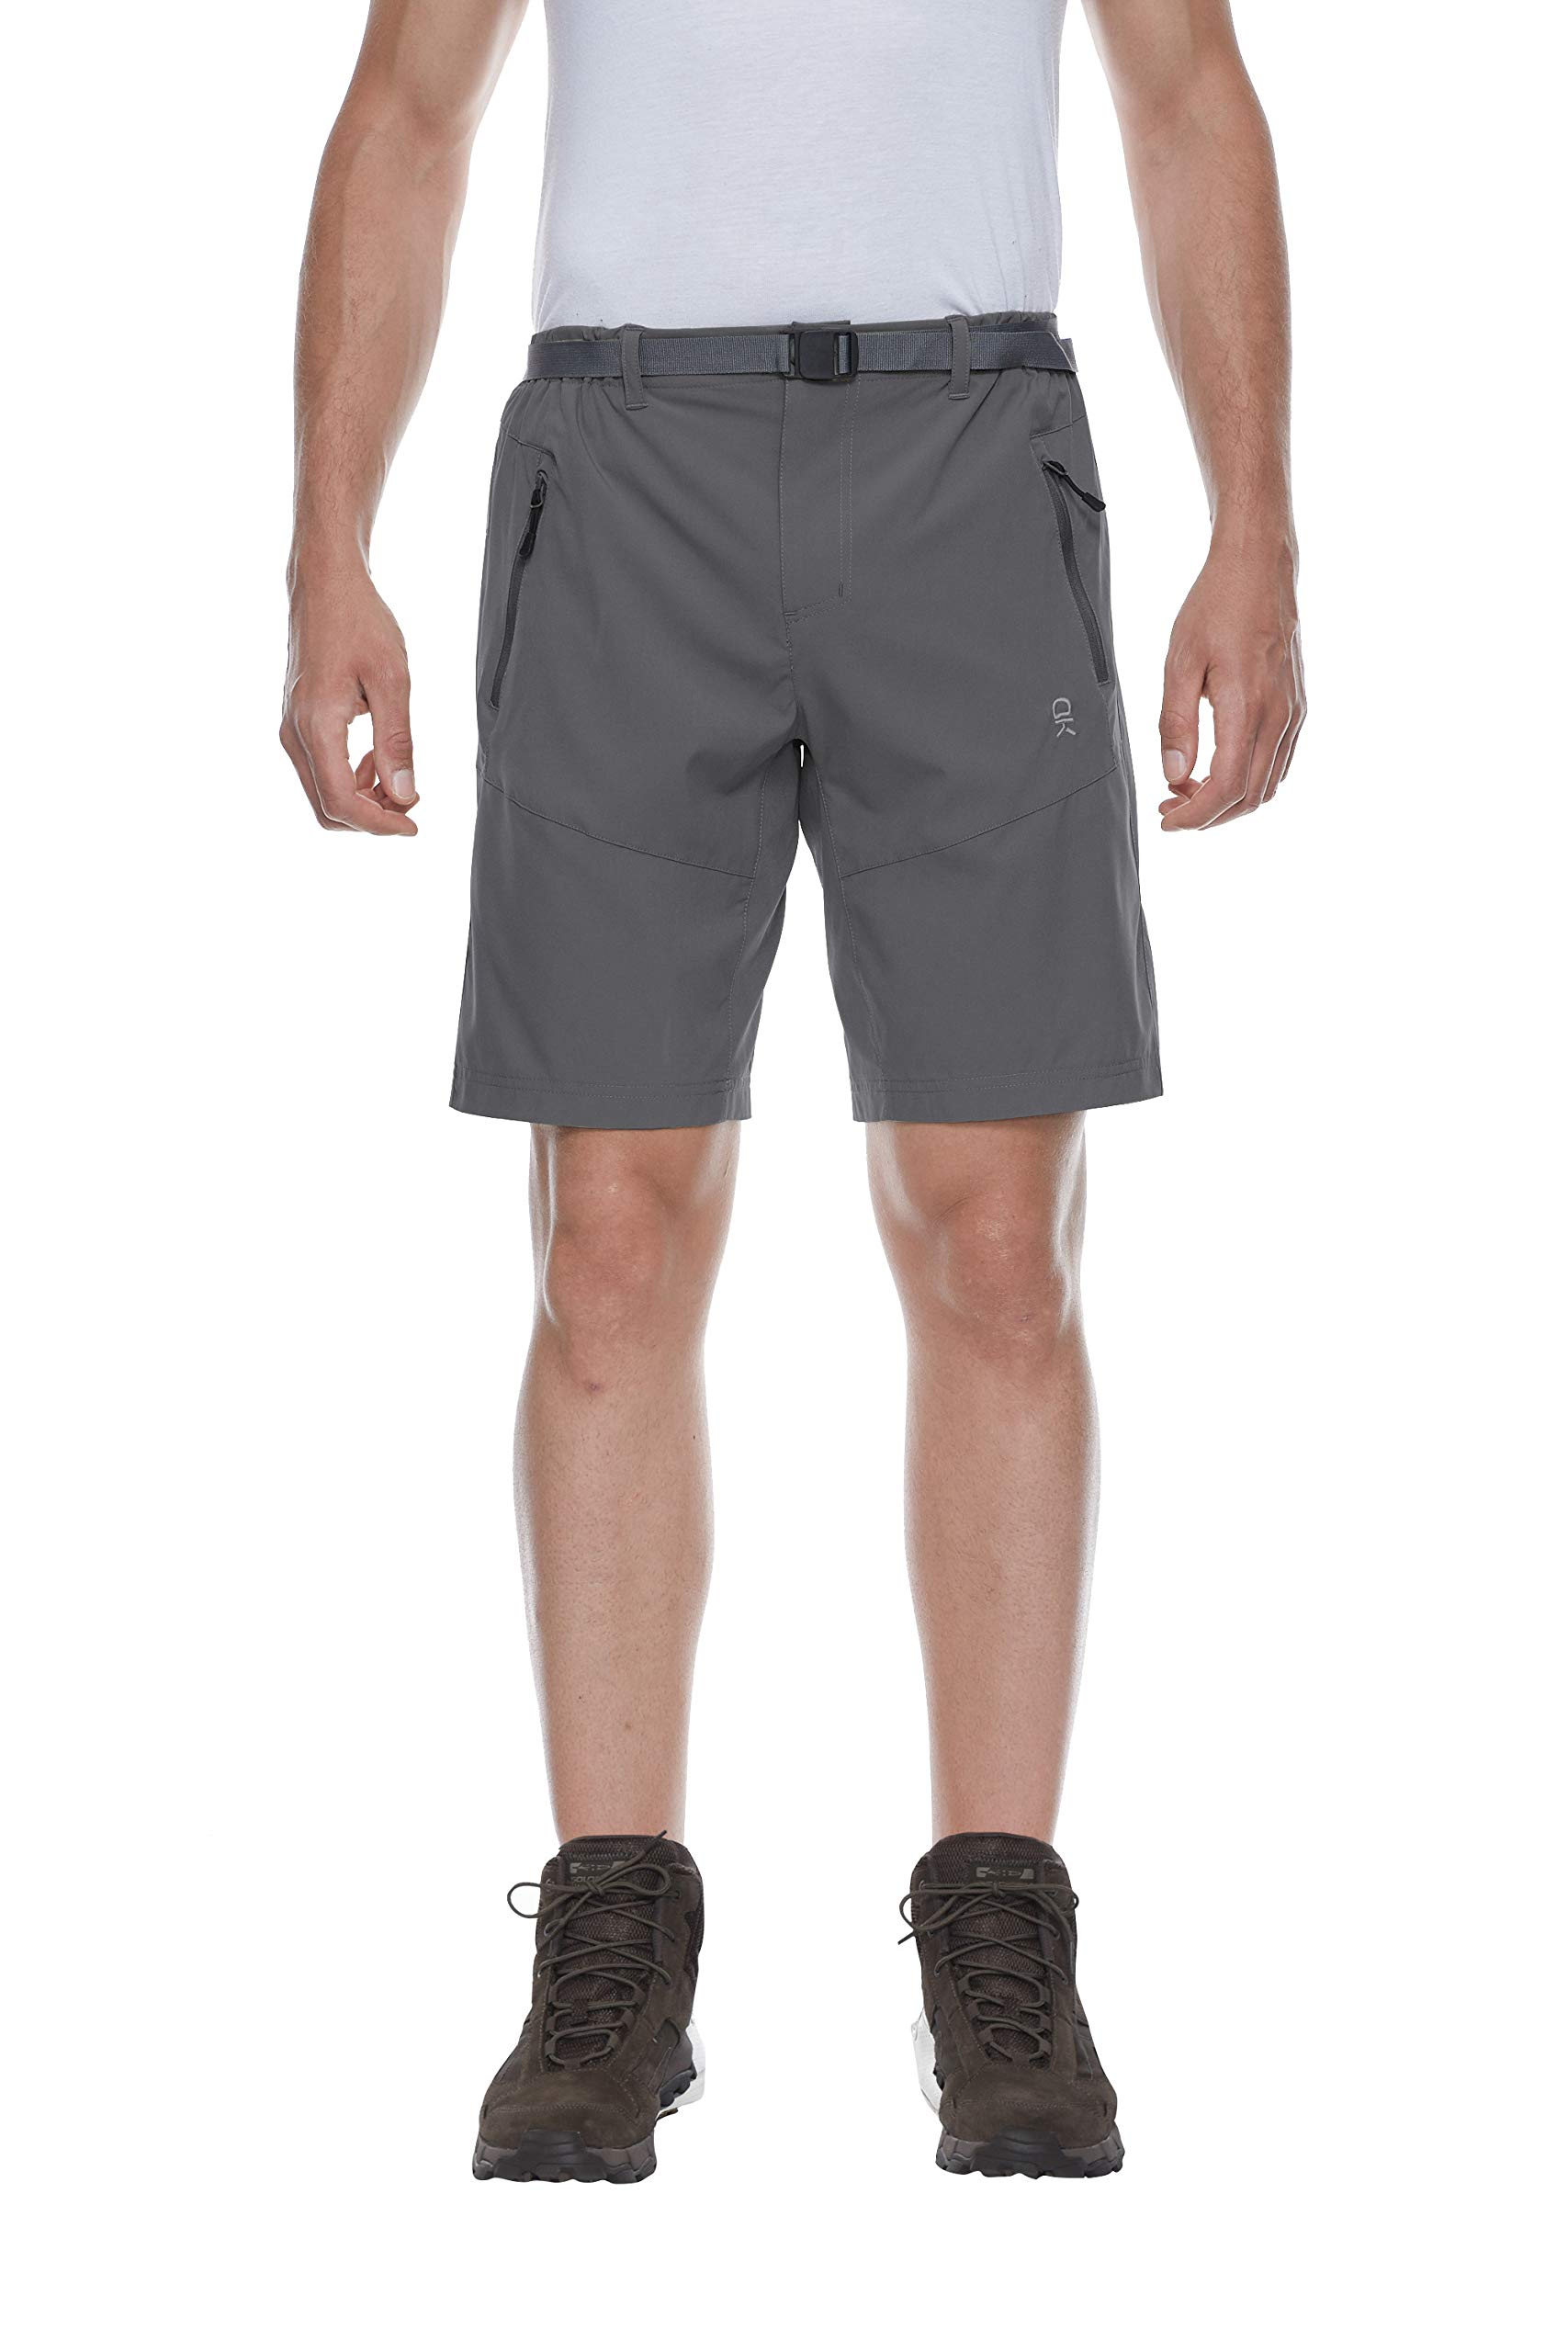 Little Donkey Andy Men's Stretch Quick Dry Cargo Shorts for Hiking, Camping, Travel Steel Gray Size XL